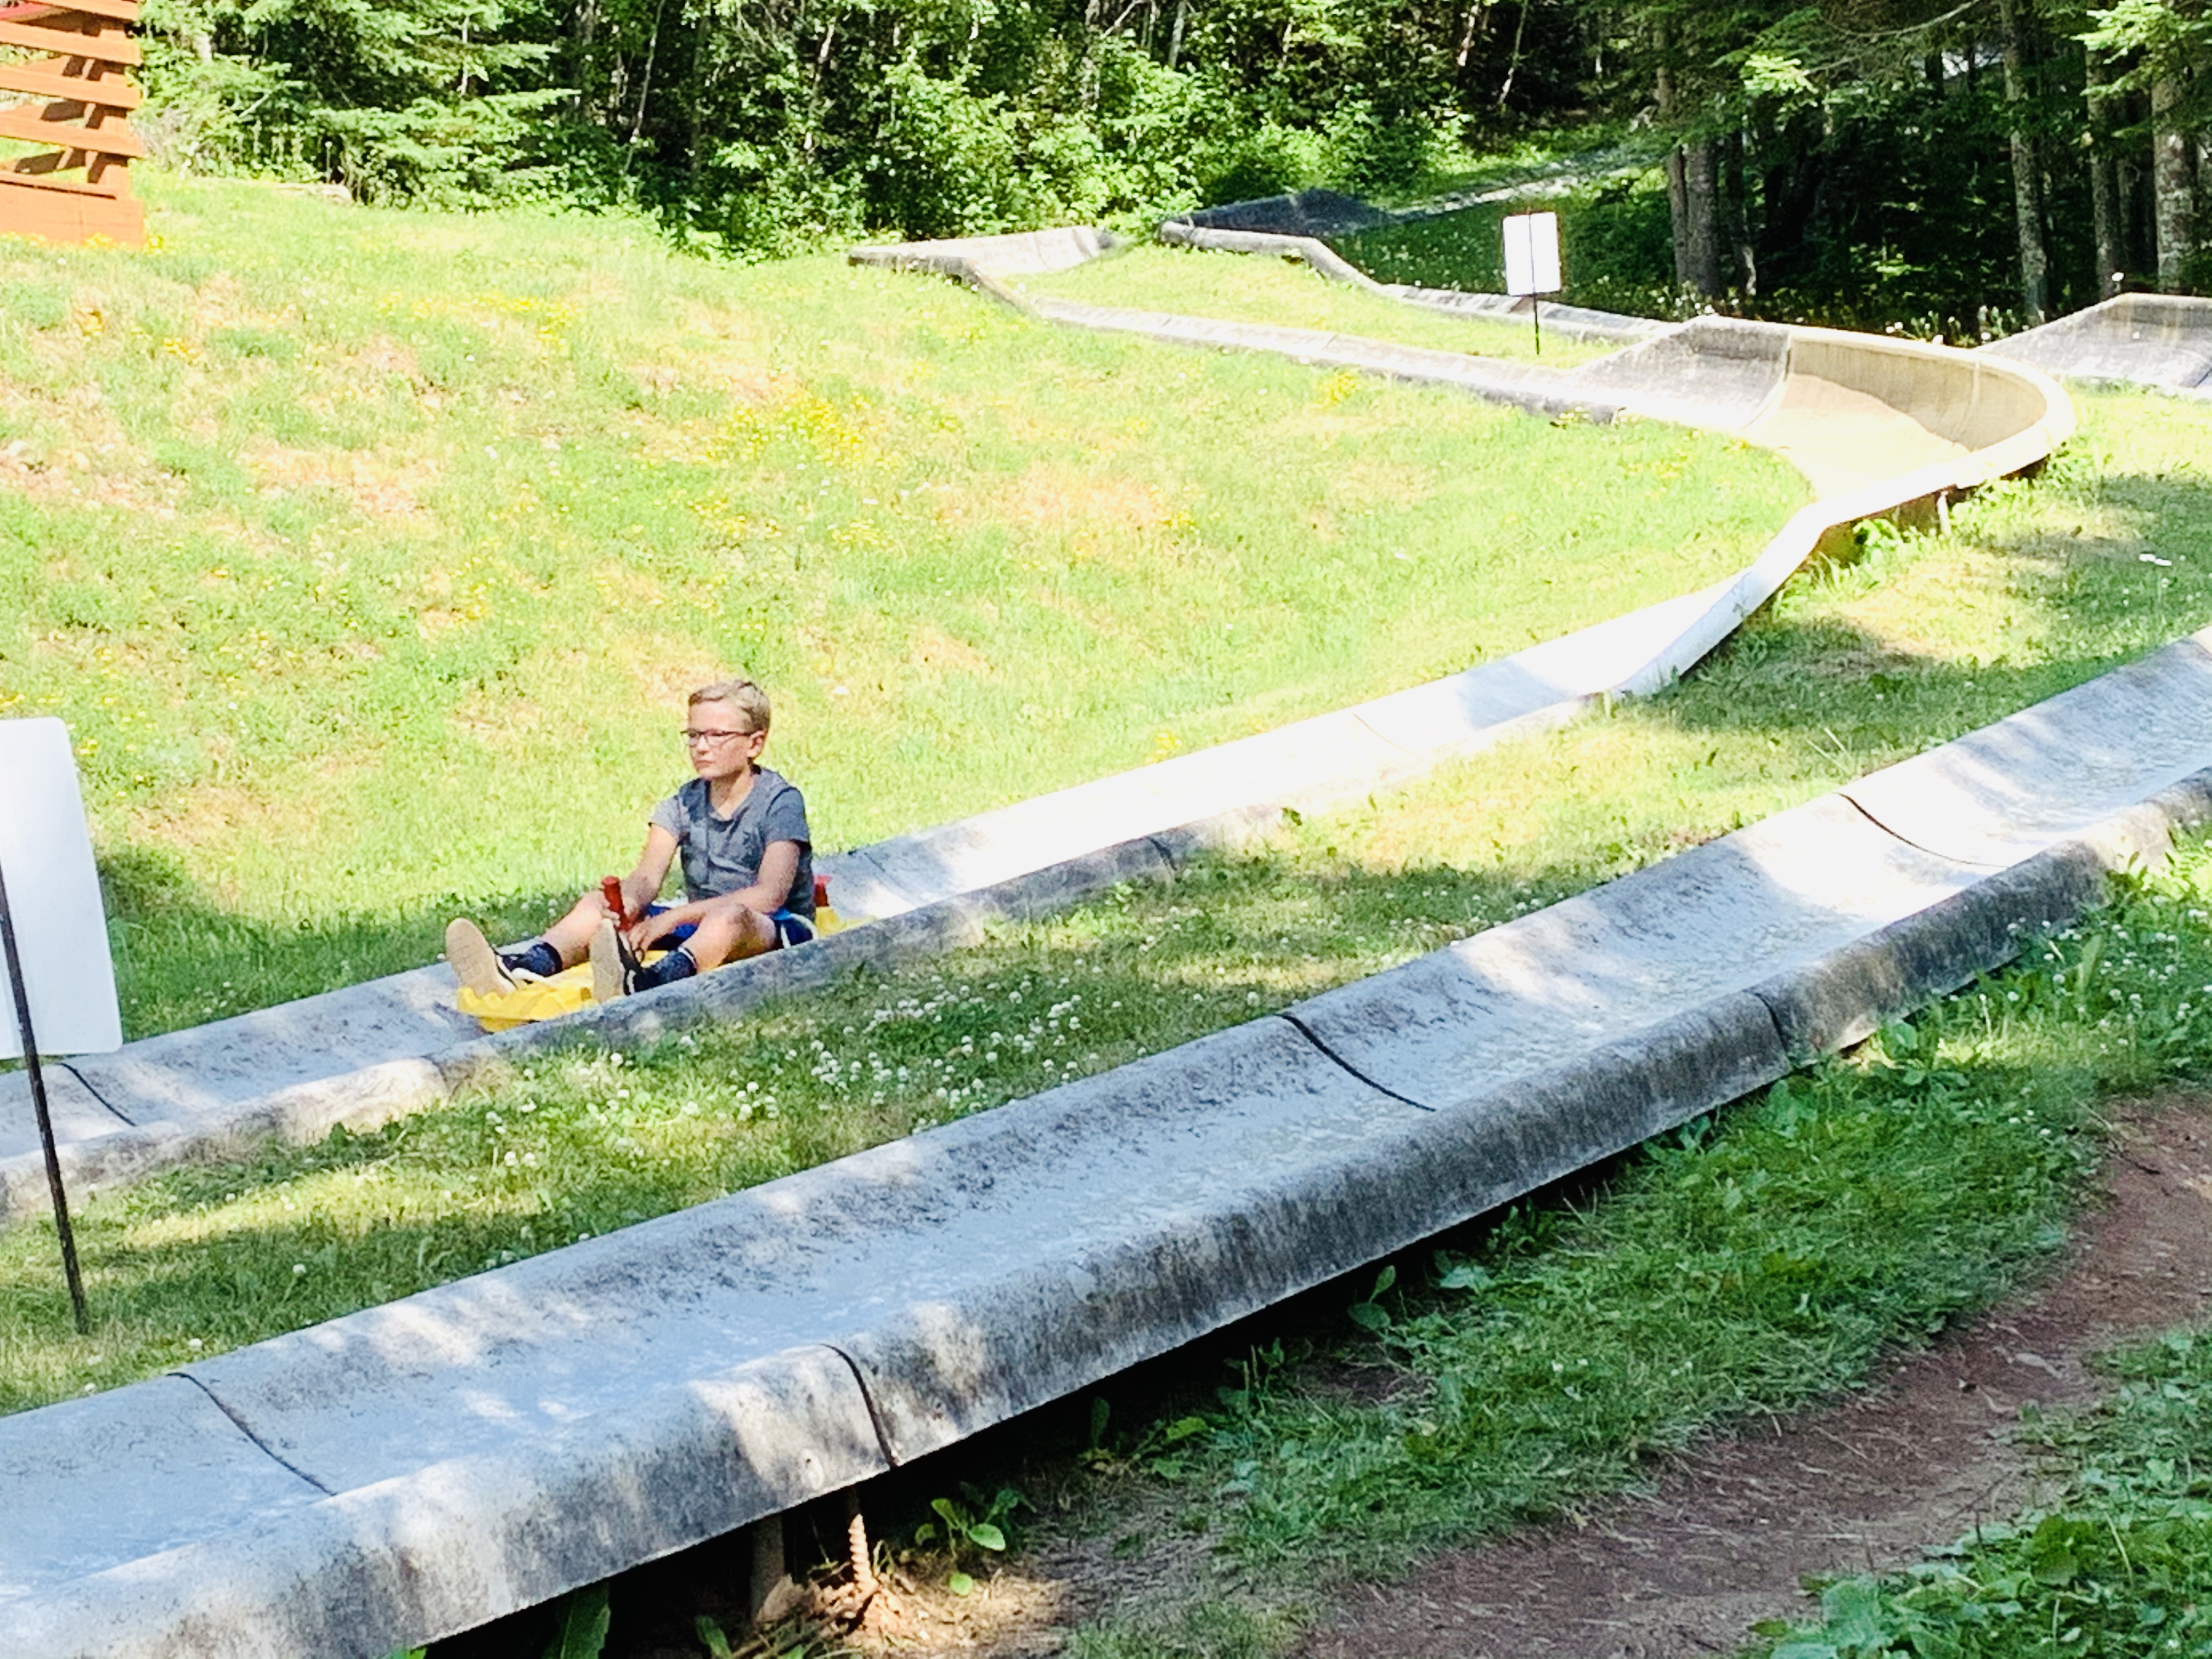 Top U.S. Family Travel Blog, Travel With A Plan, details a Minnesota North Shore road trip along the North Shore Scenic Drive.